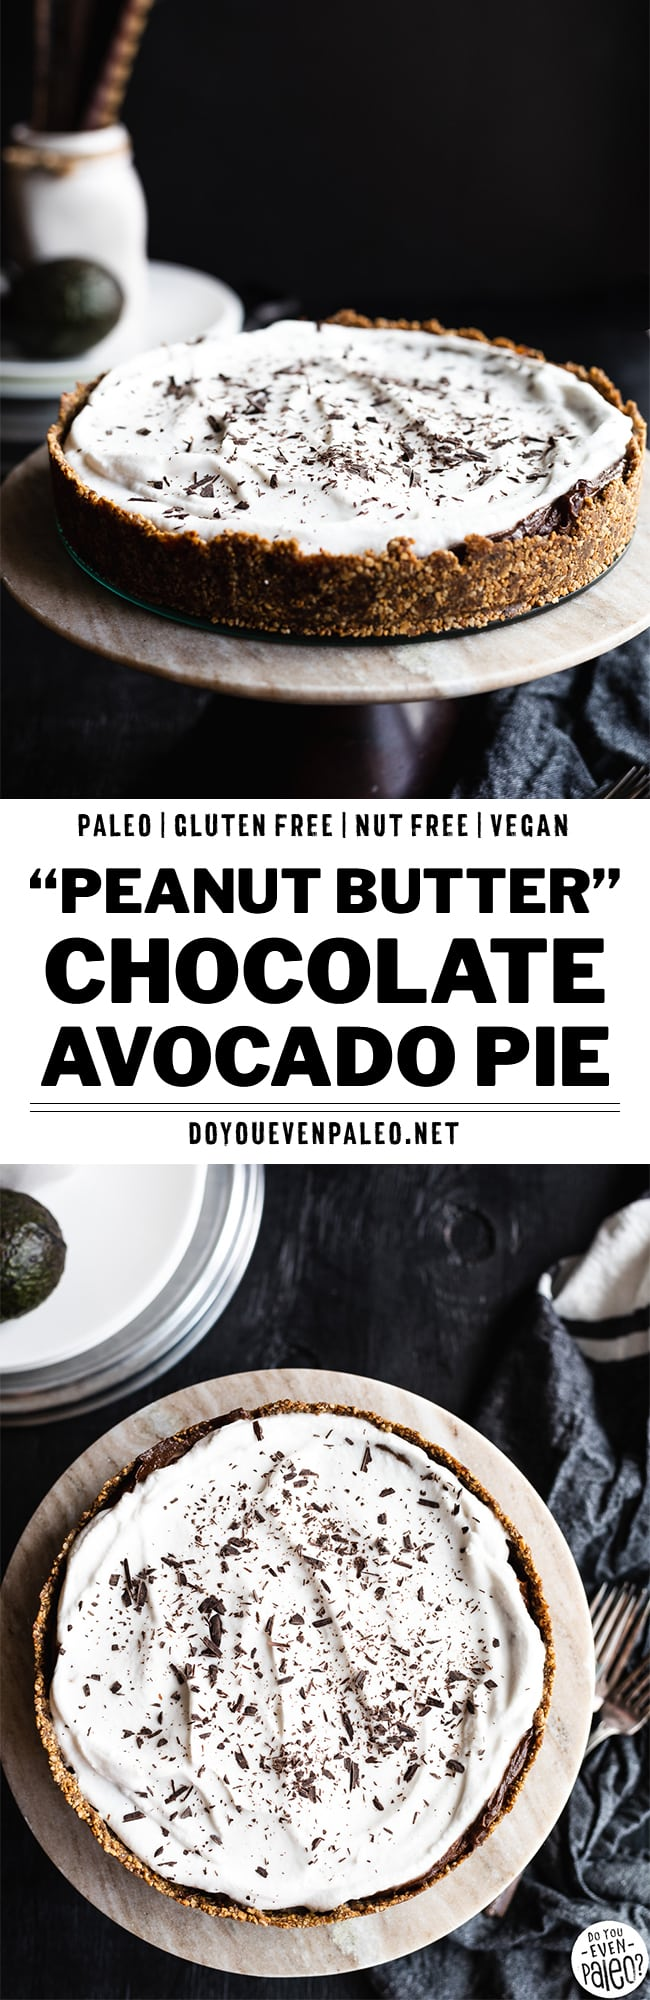 Paleo Faux Peanut Butter Chocolate Avocado Pudding Pie | DoYouEvenPaleo.net